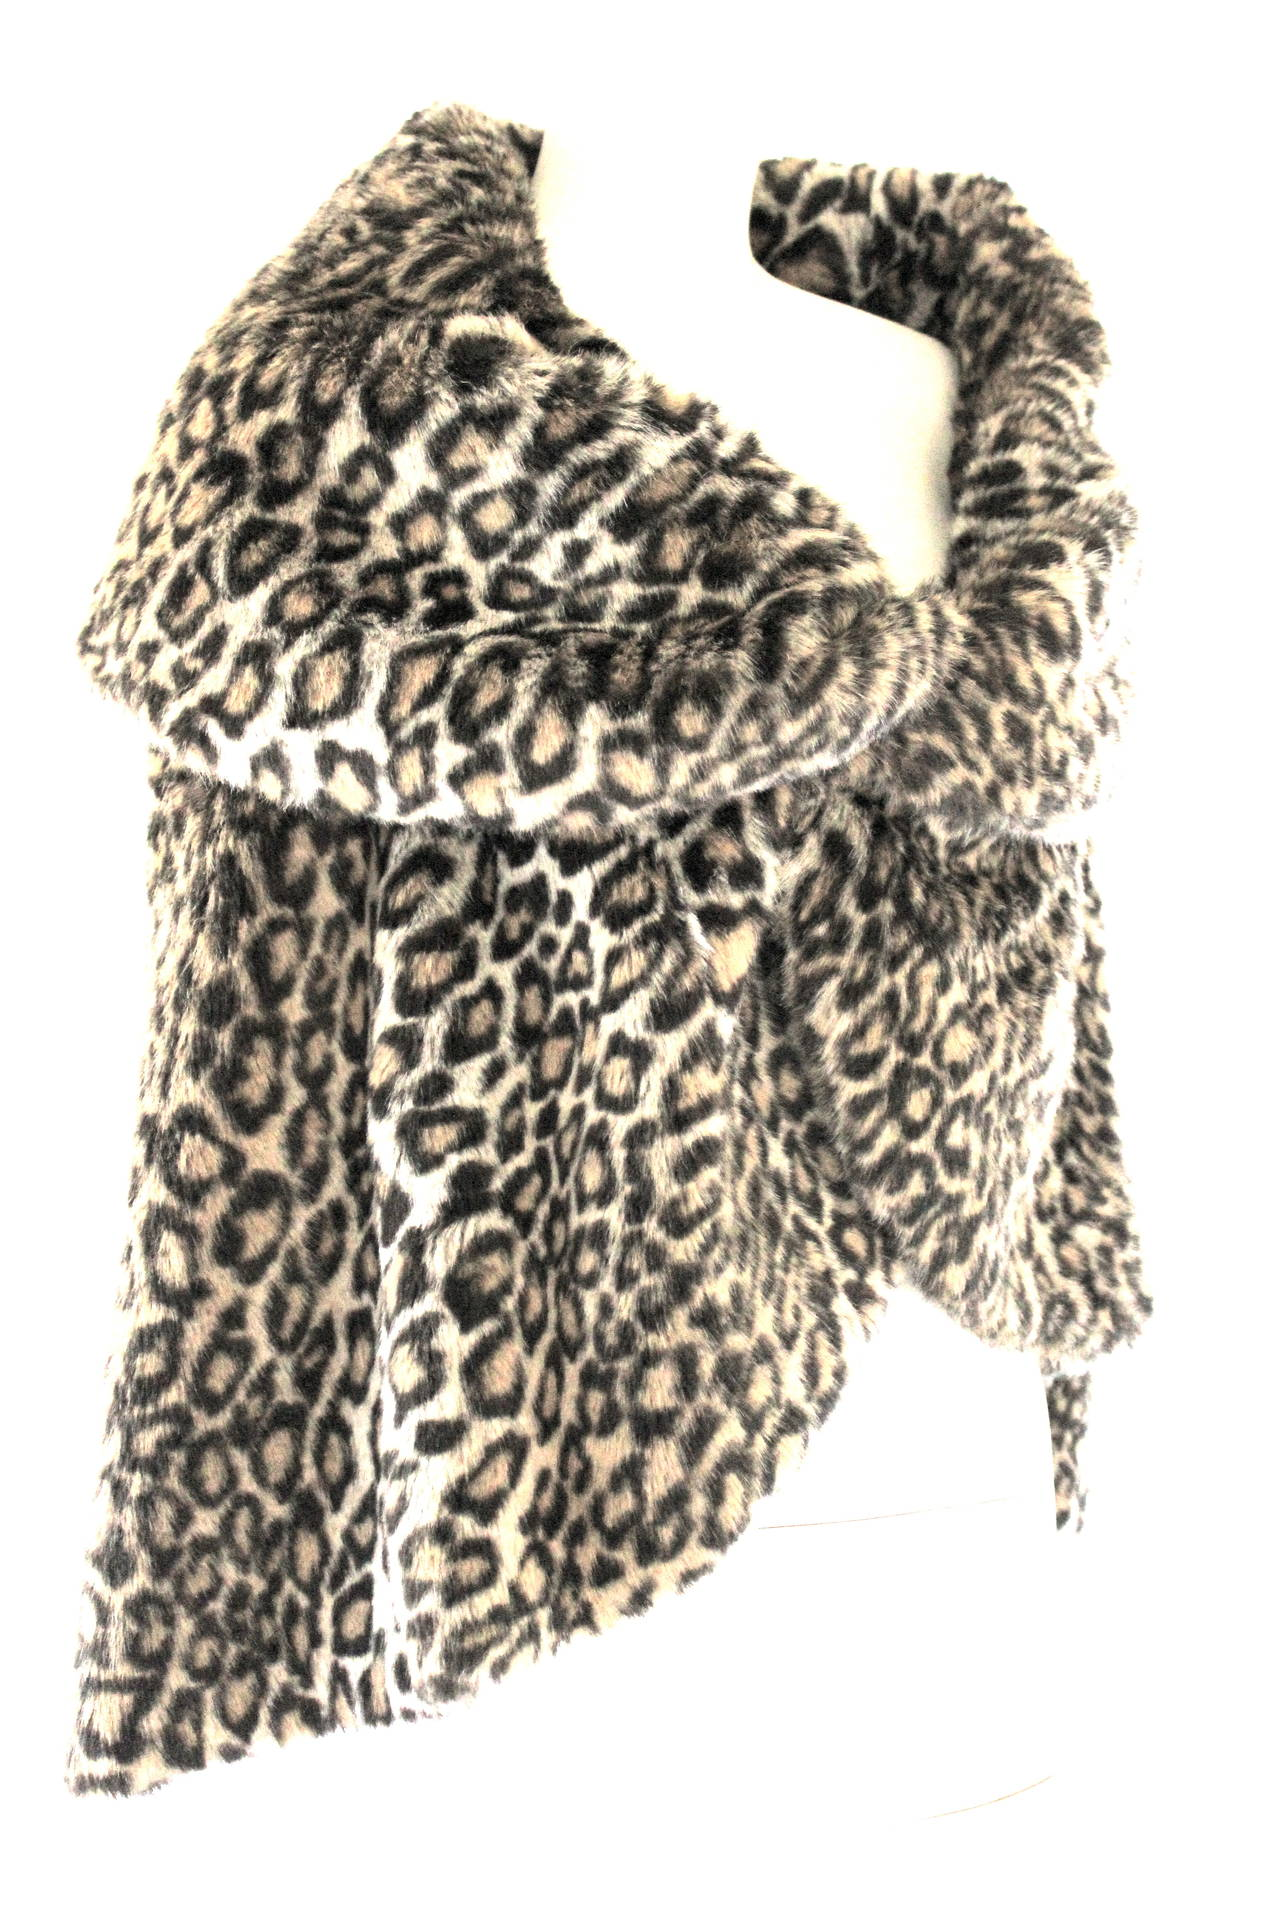 Junya Watanabe for CDG AD 2000 Faux Fur Leopard Cape In Excellent Condition For Sale In Bath, GB